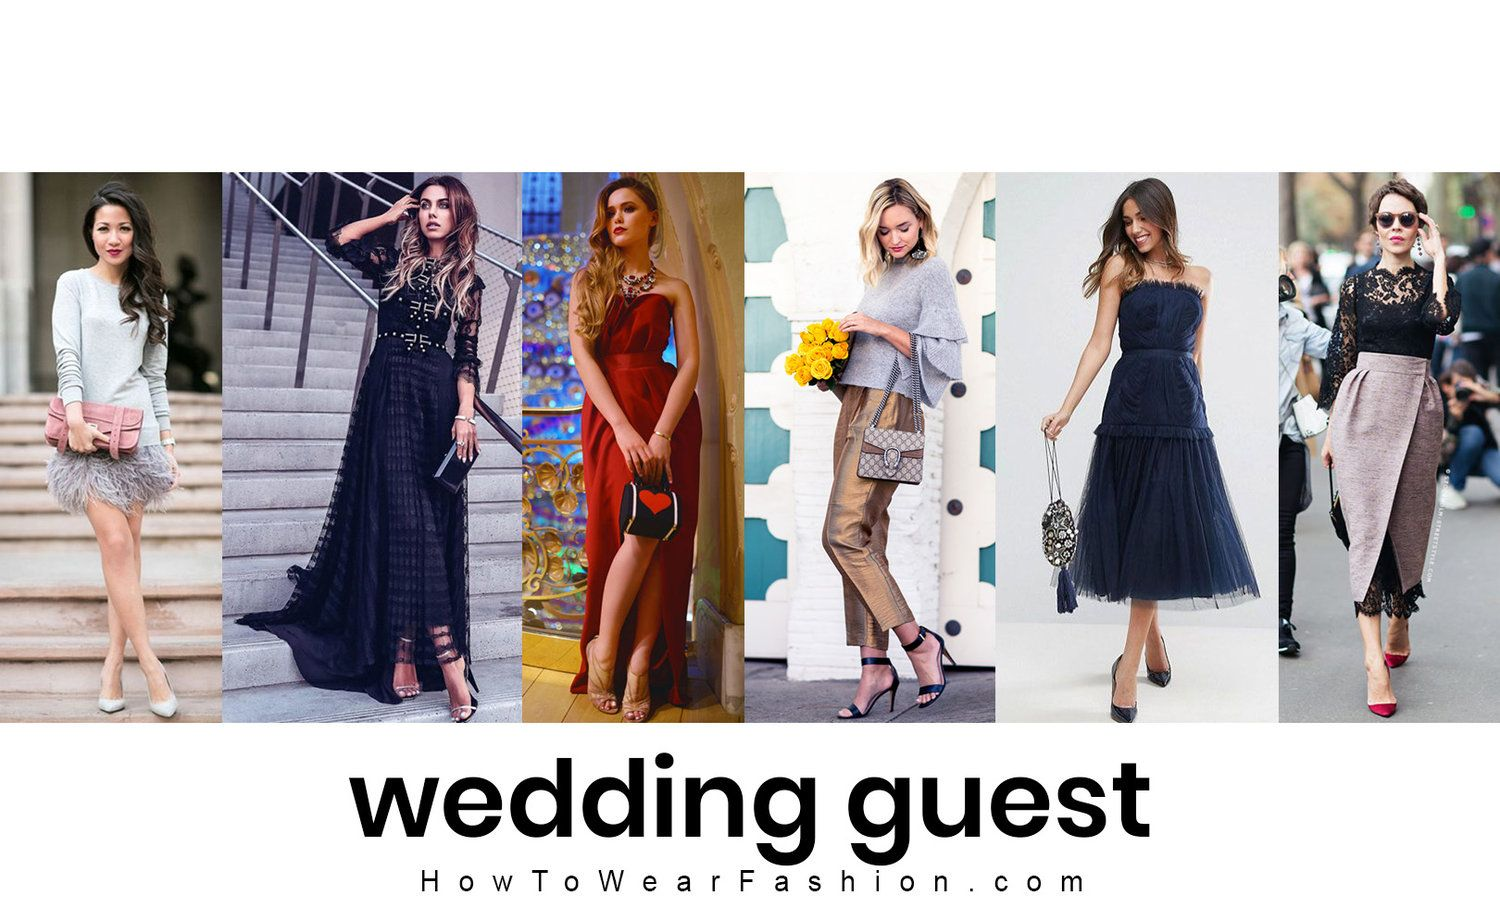 Wedding Guest Winter Howtowear Fashion What To Wear To A Wedding Wedding Guest Outfit February Wedding